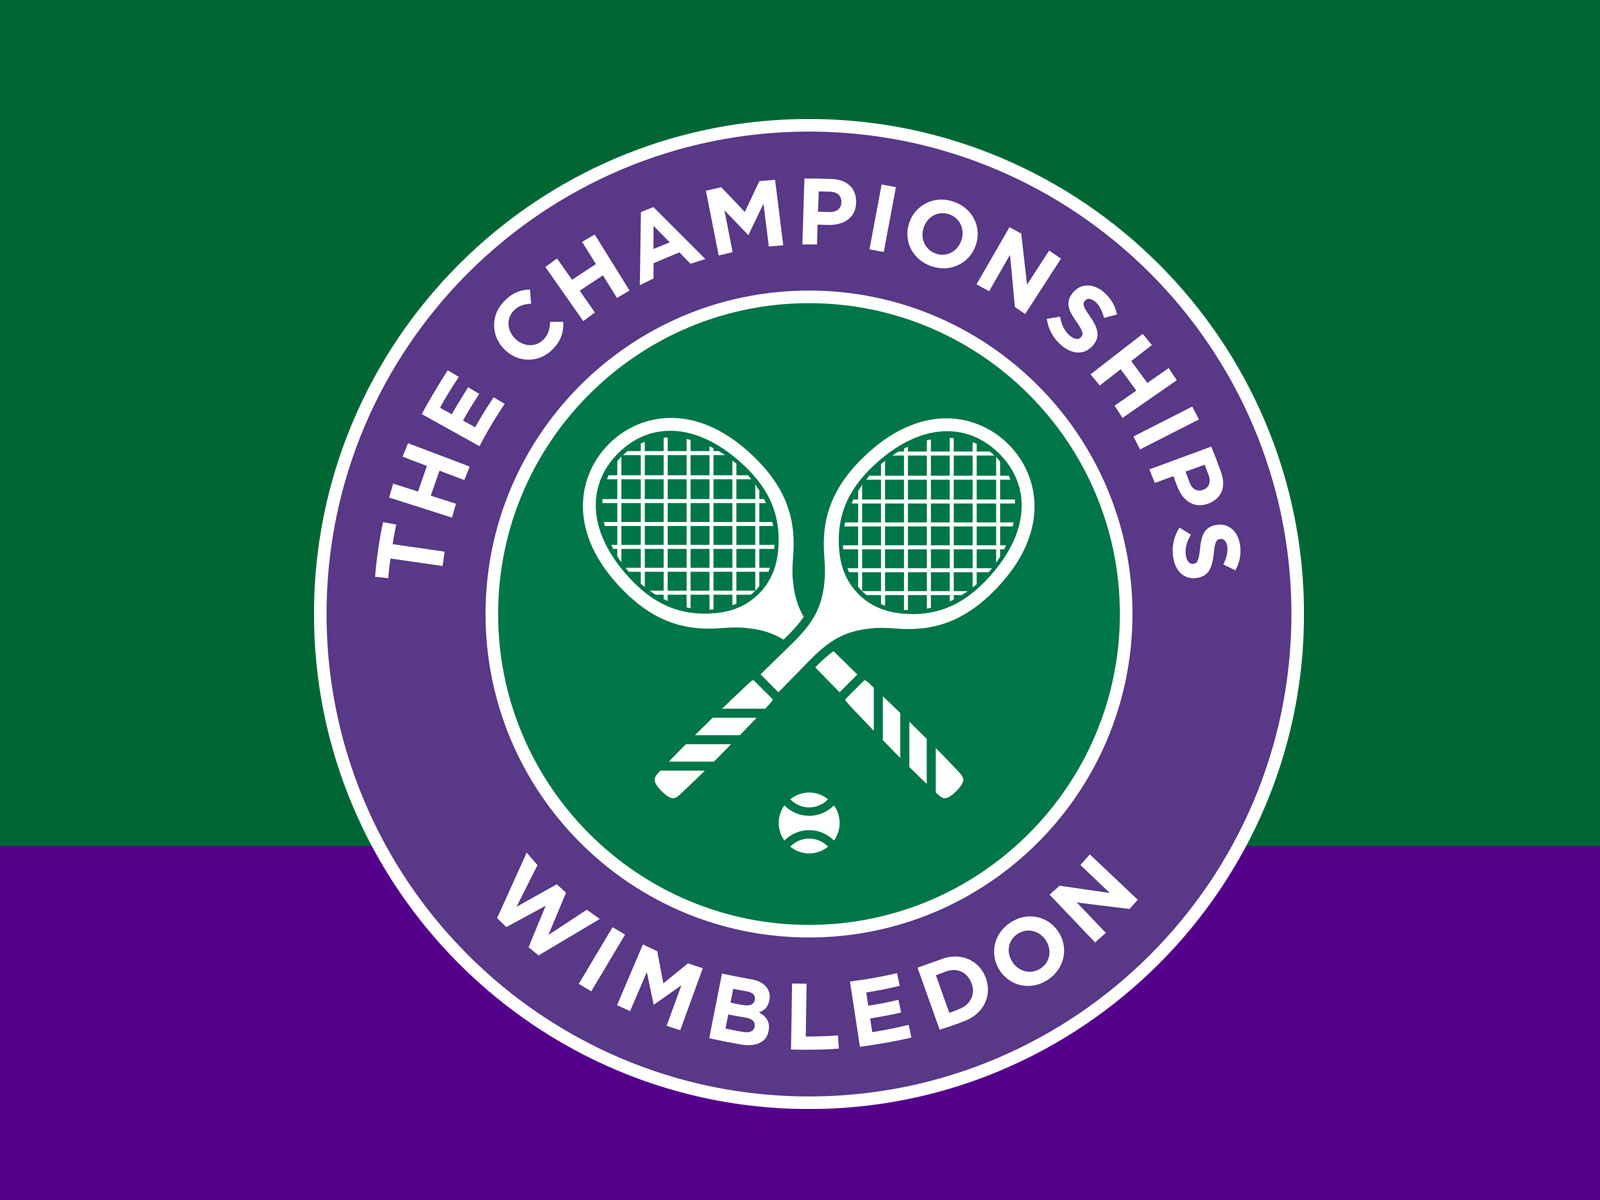 Come vedere la finale di Wimbledon 2015 Federer Djokovic in streaming su iPhone e iPad